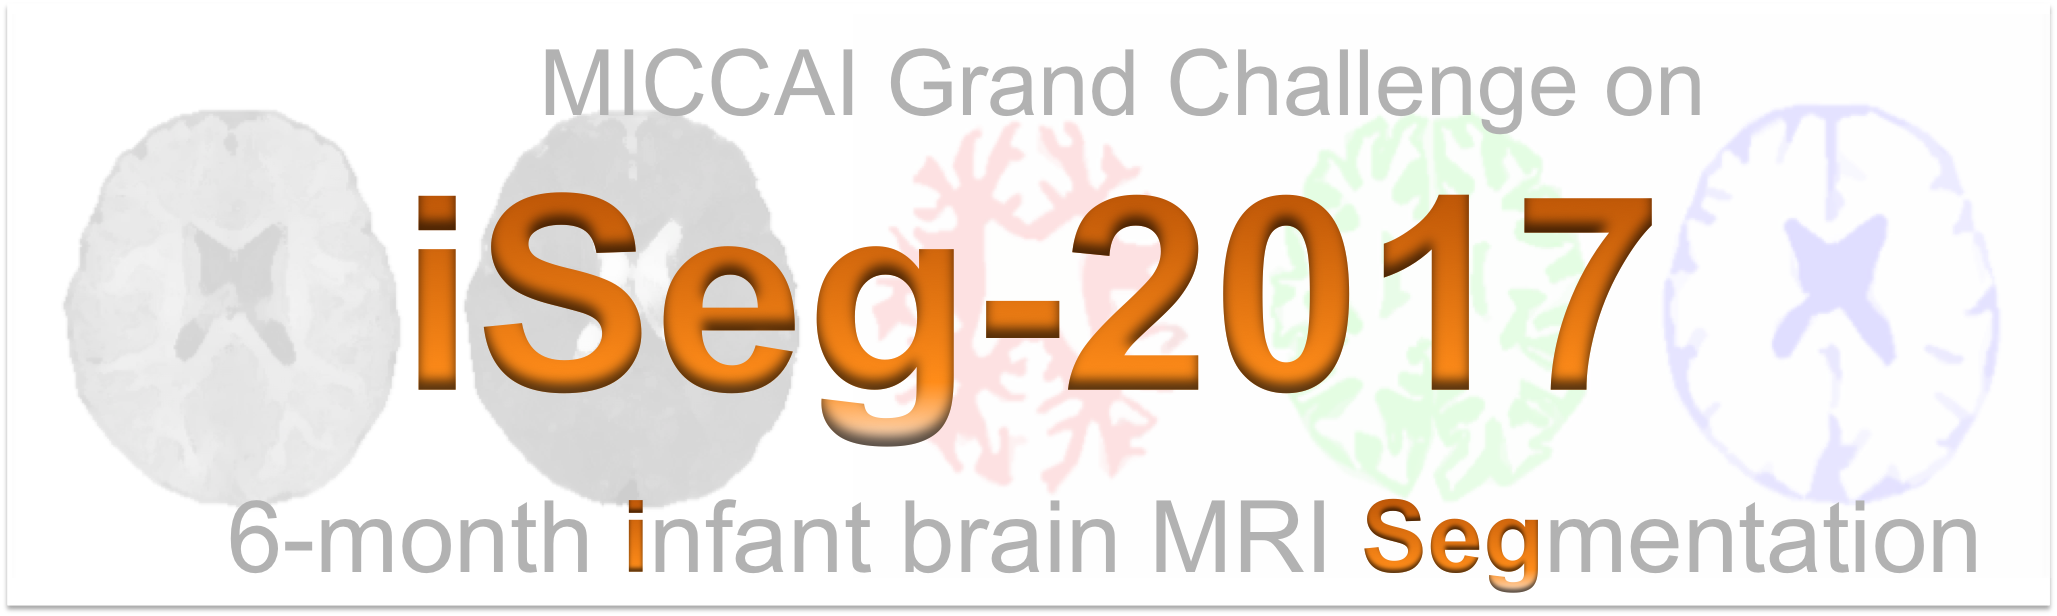 MICCAI Grand Challenge on 6-month Infant Brain MRI Segmentation